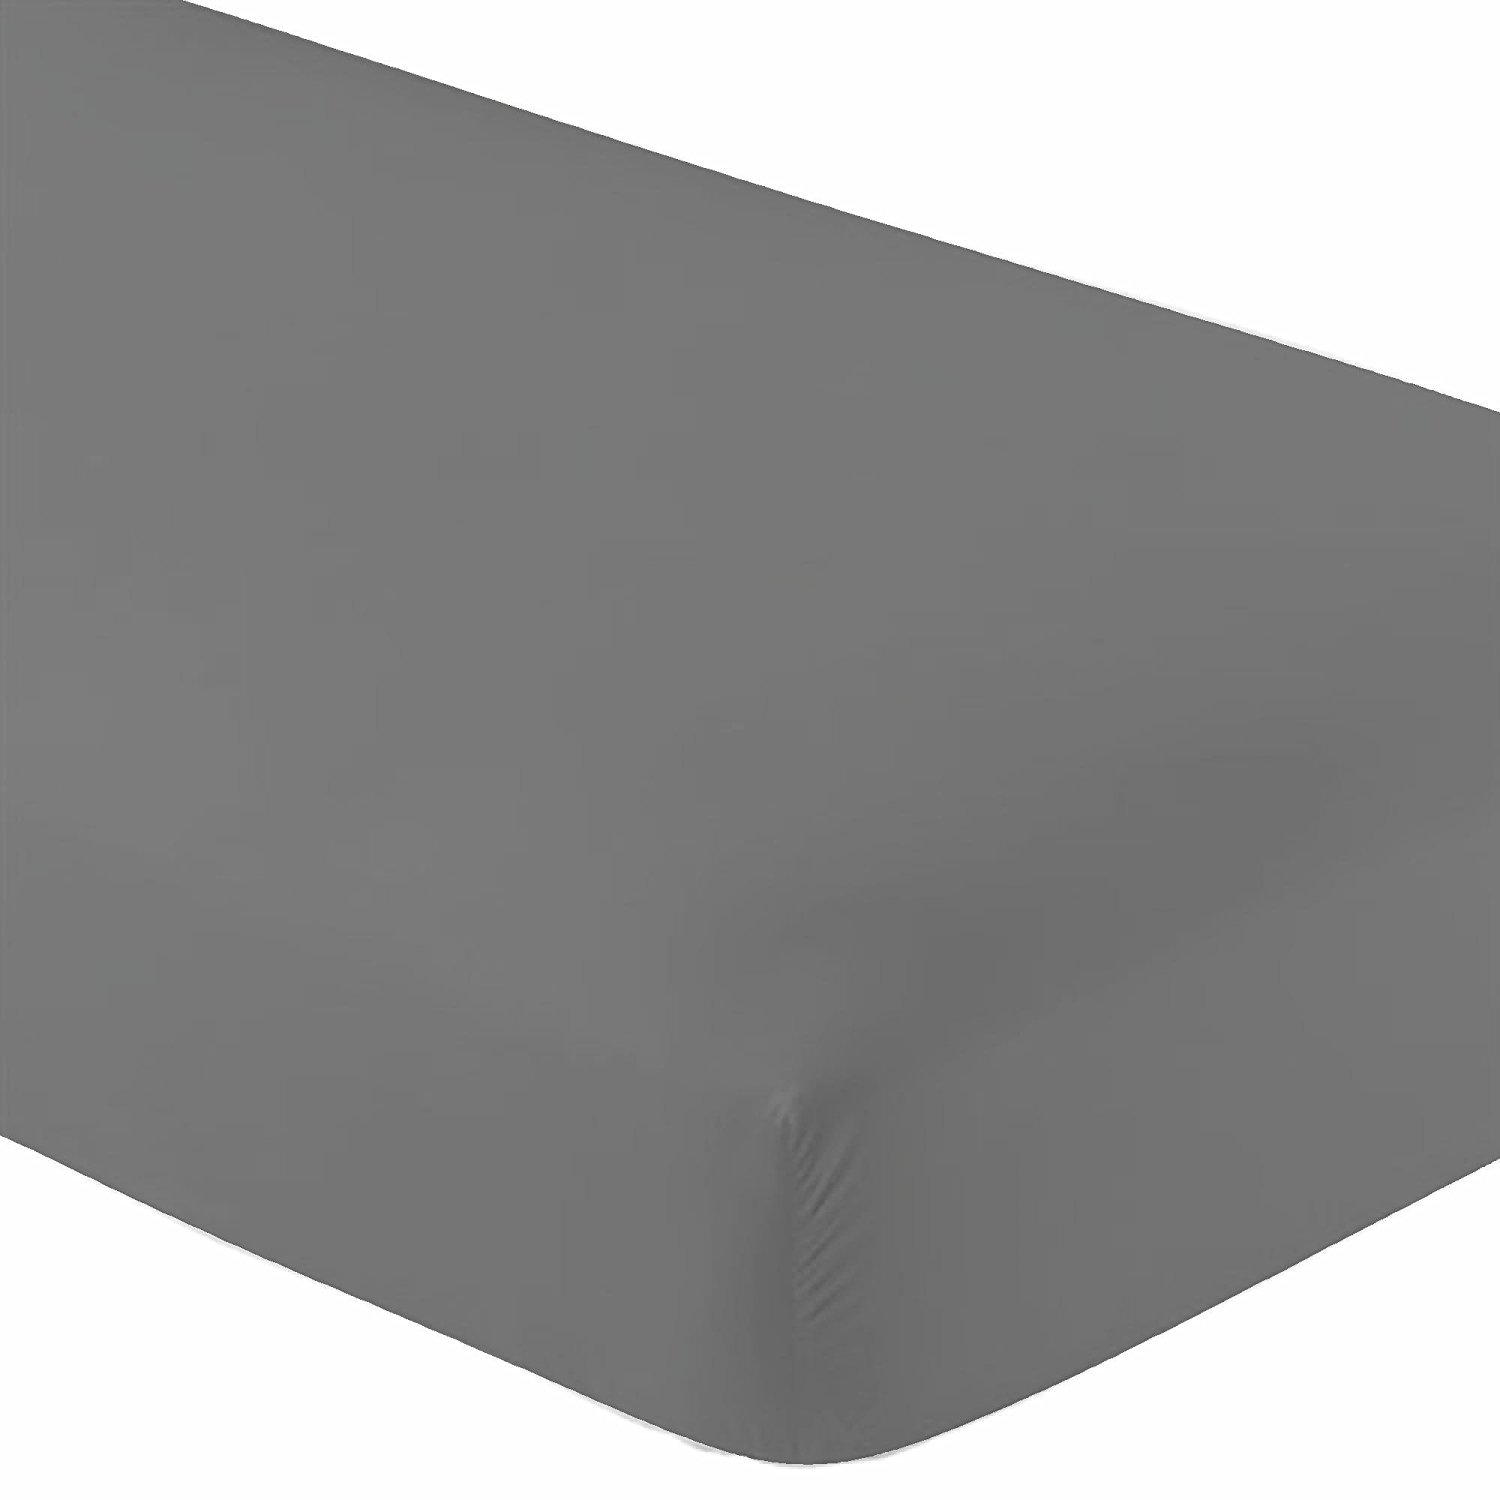 Twin Extra Long Micro Fiber Fitted sheet - Soft and Comfy - By Crescent Bedding Grey Twin XL